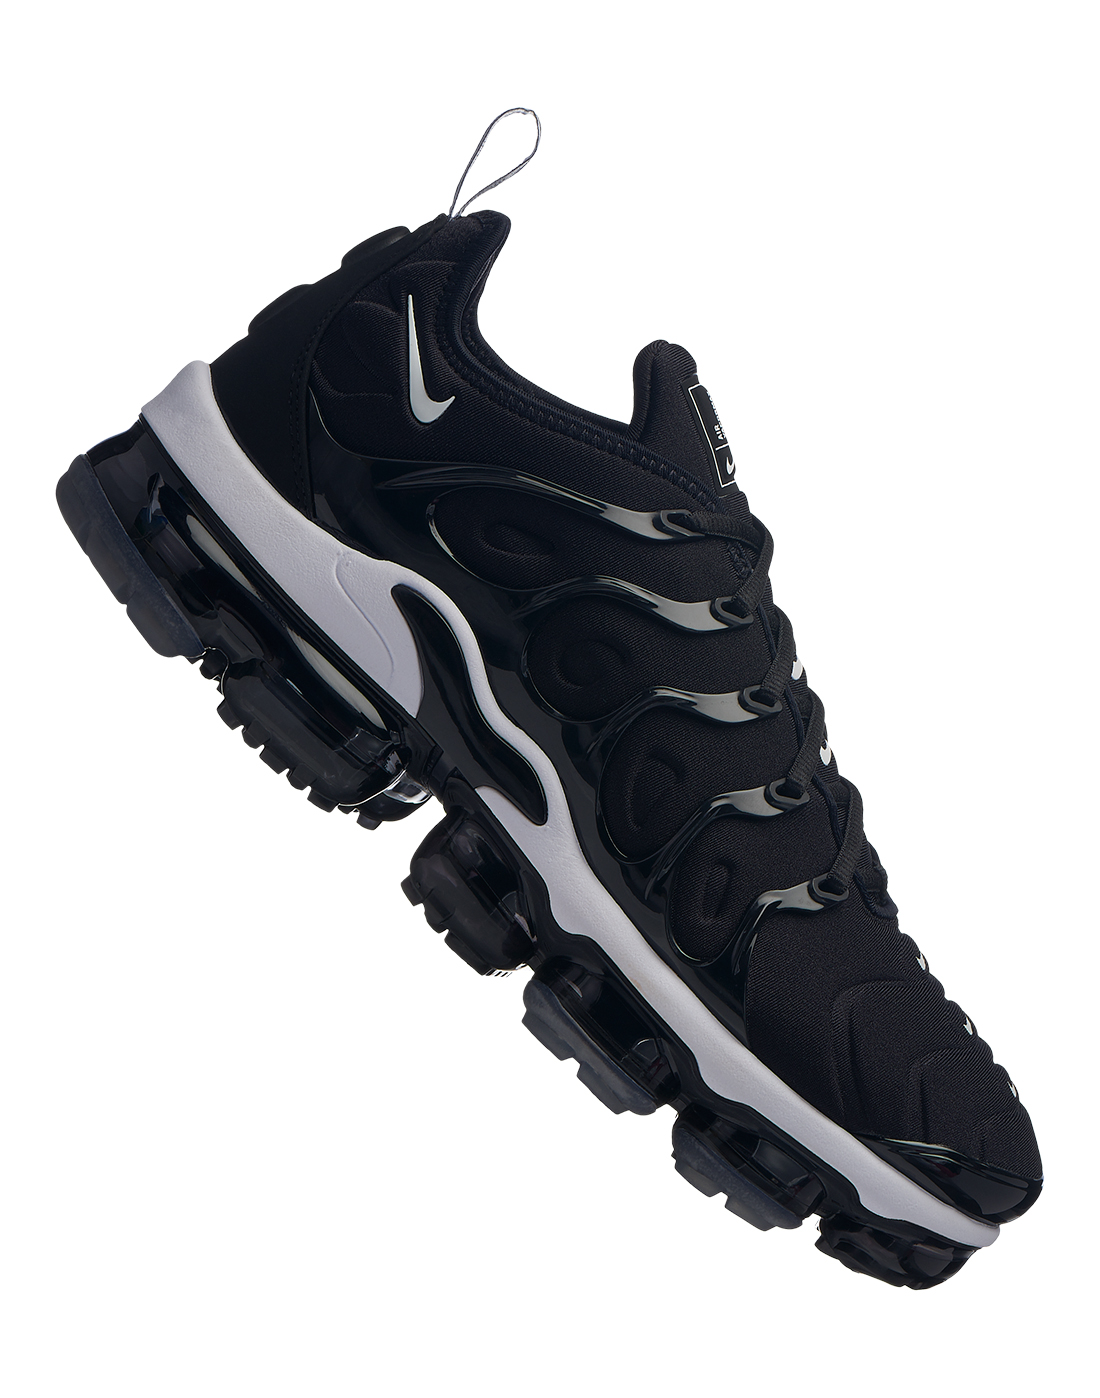 finest selection 7d252 e0a09 Women's Black NIke VaporMax Plus Trainers | Life Style Sports